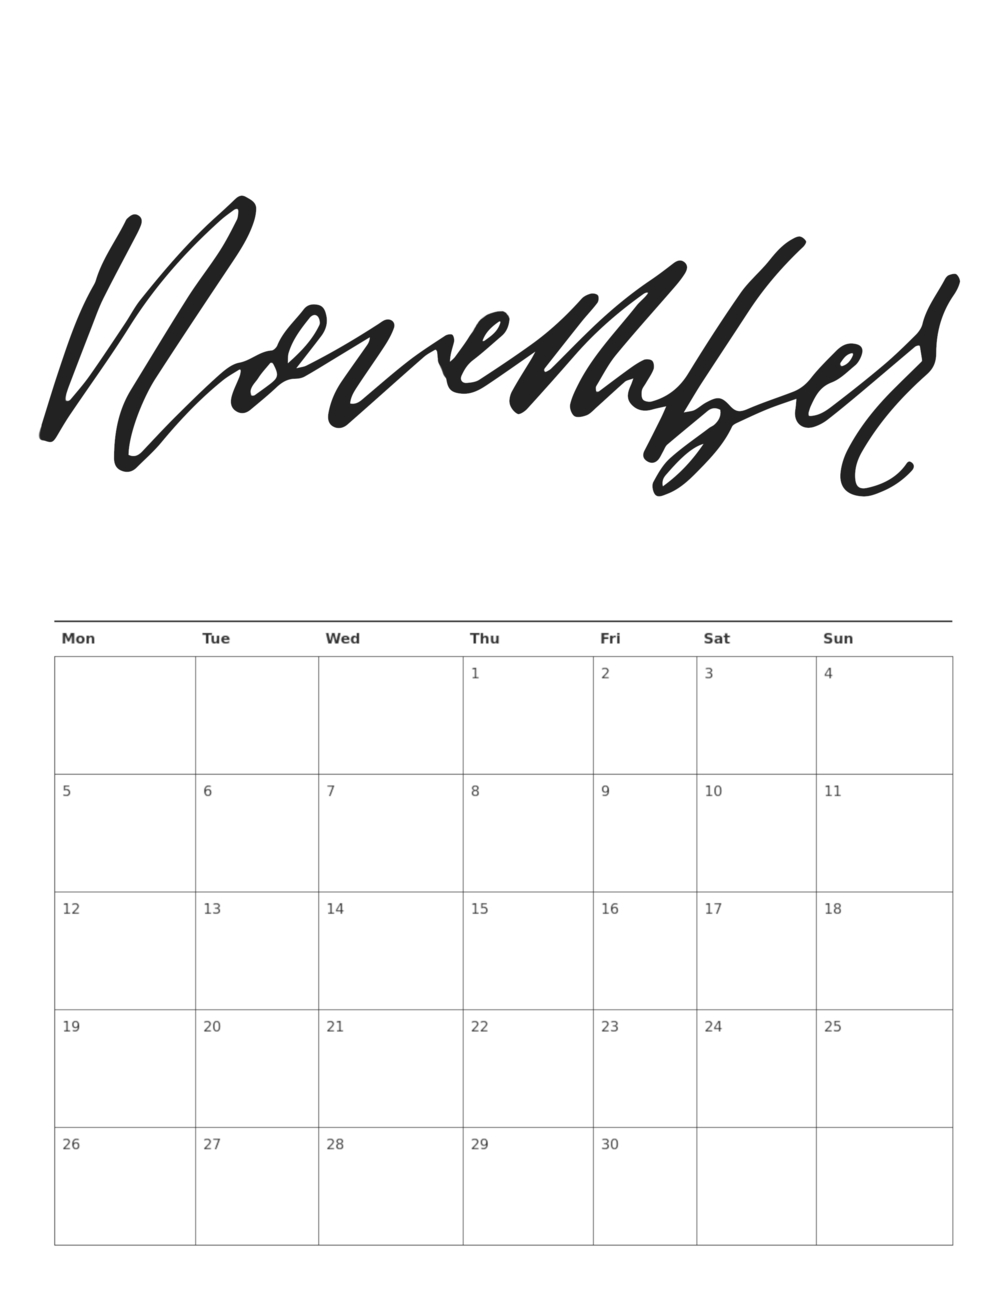 free printable 2018 calligraphy or brush lettering calendar::November 2018 Calendar